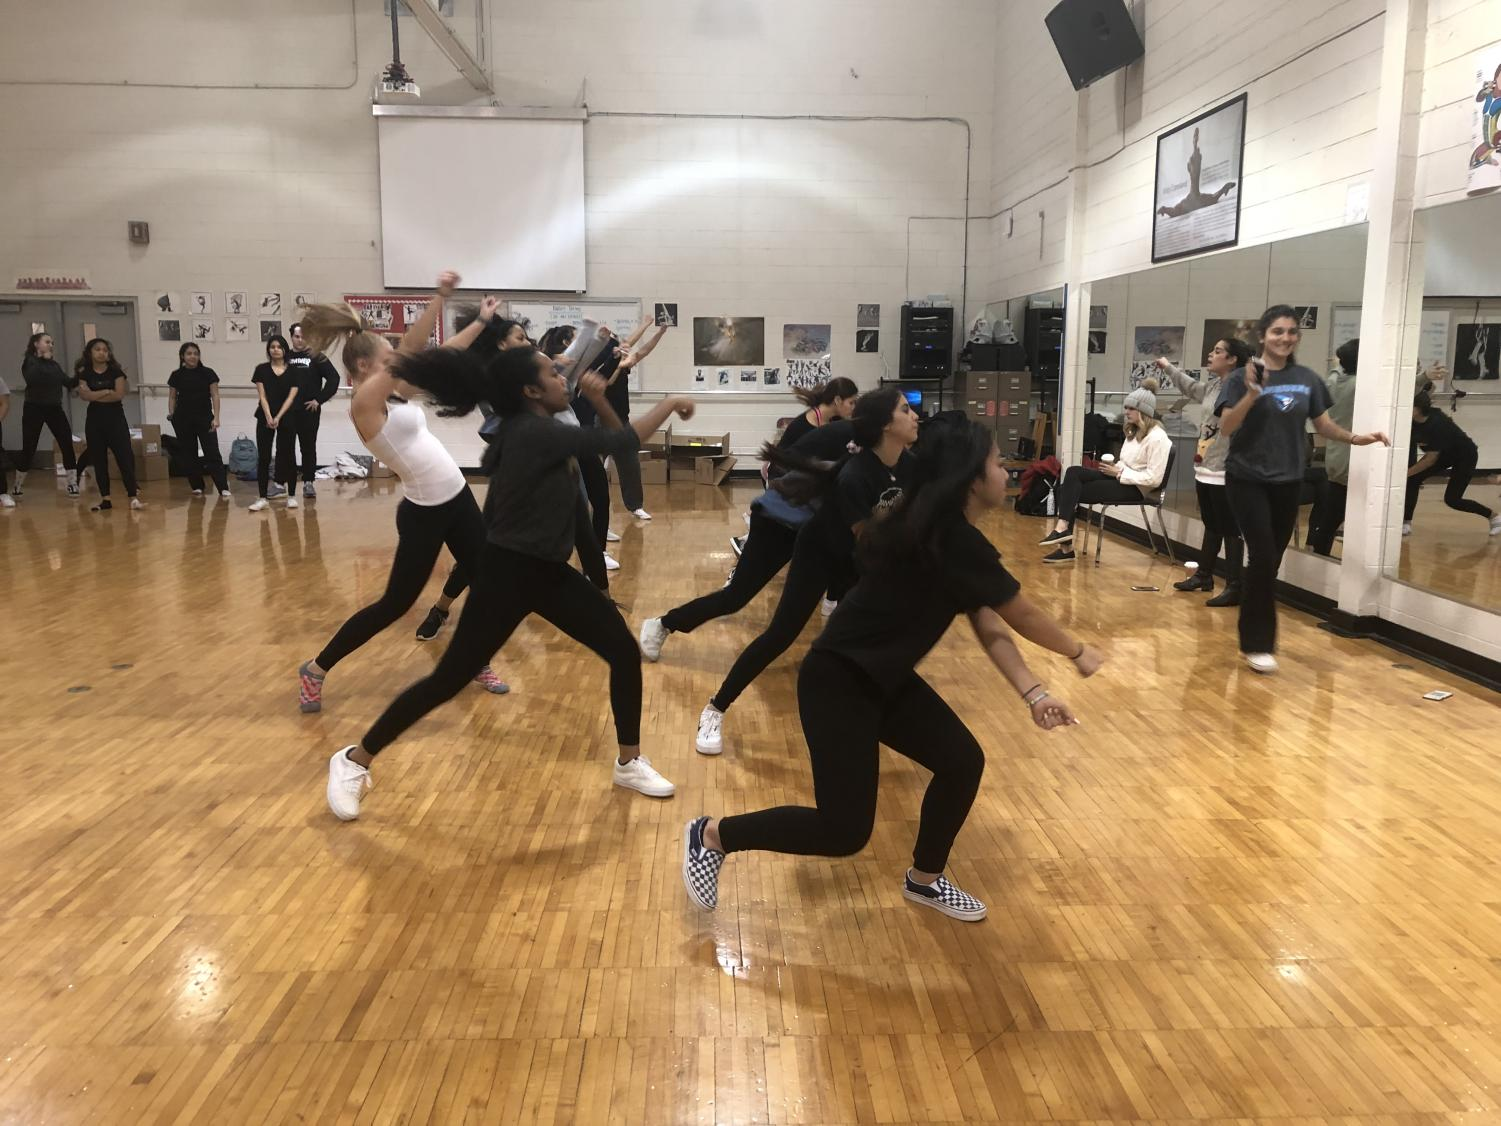 The poms team practicing their routine before the competition this past weekend.